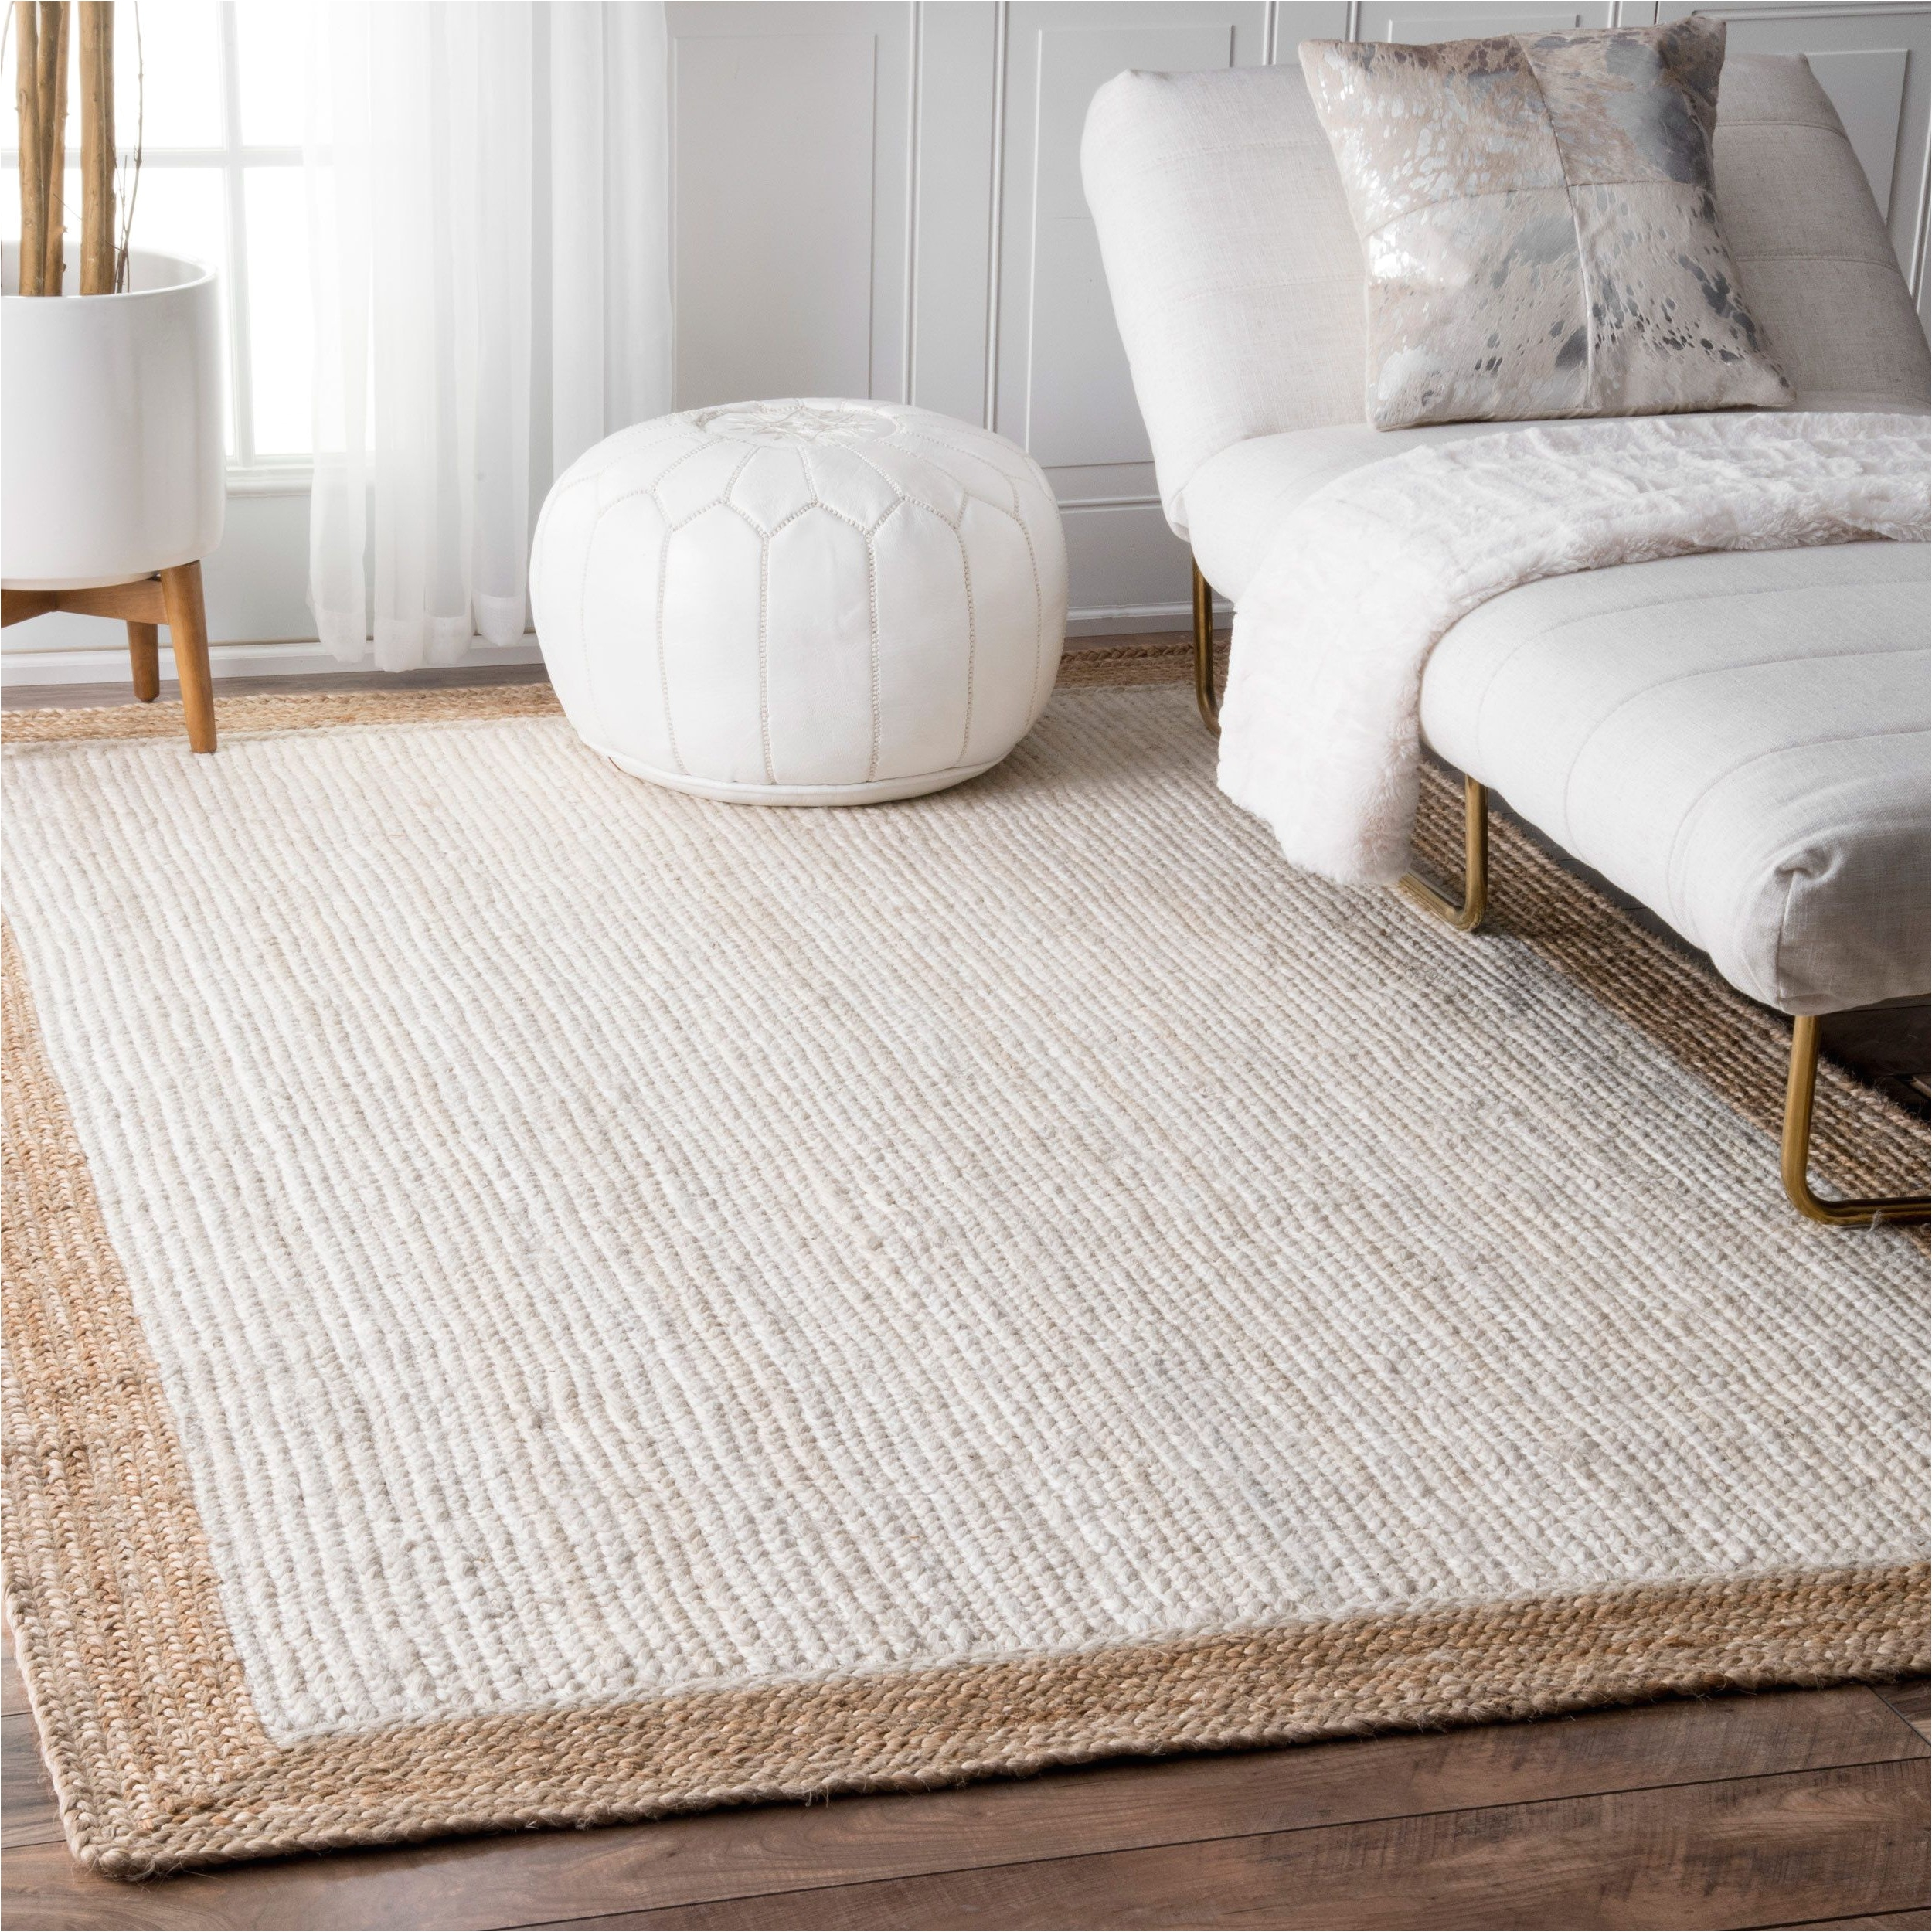 home depot living room rugs pillows floor canada jute rug funky wood chip mulch ornament decorating